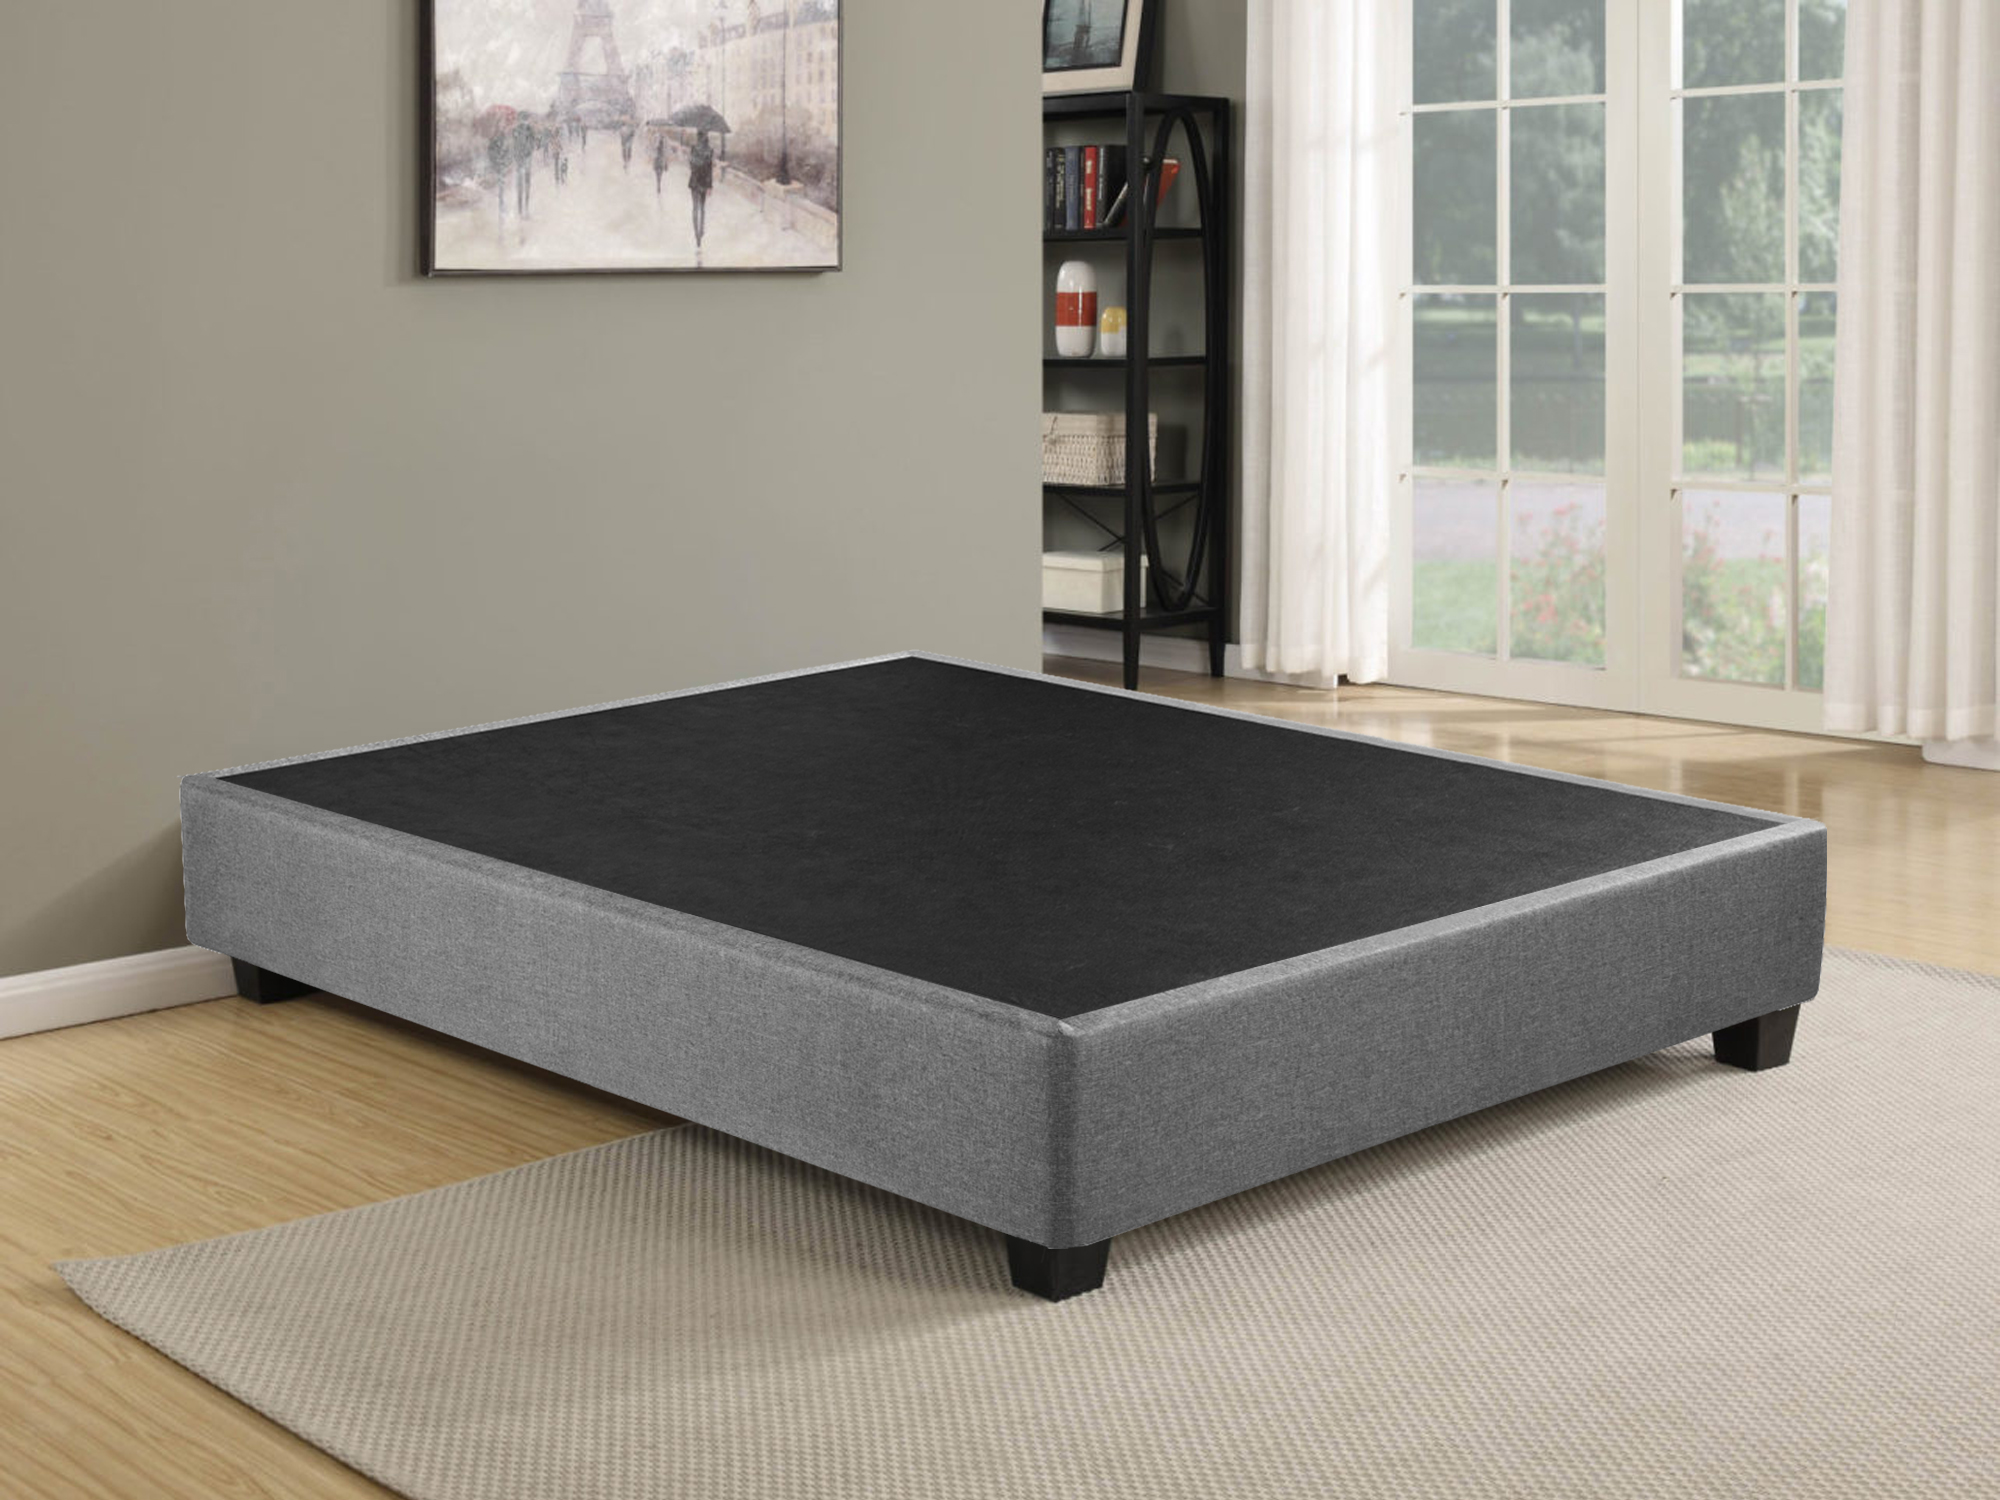 Wayton Box Sping Foundation Platform Bed For King Size 80 X 78 Mattress Comes With Legs To Eliminate Need For Bed Frame 79x72x8 Walmart Com Walmart Com